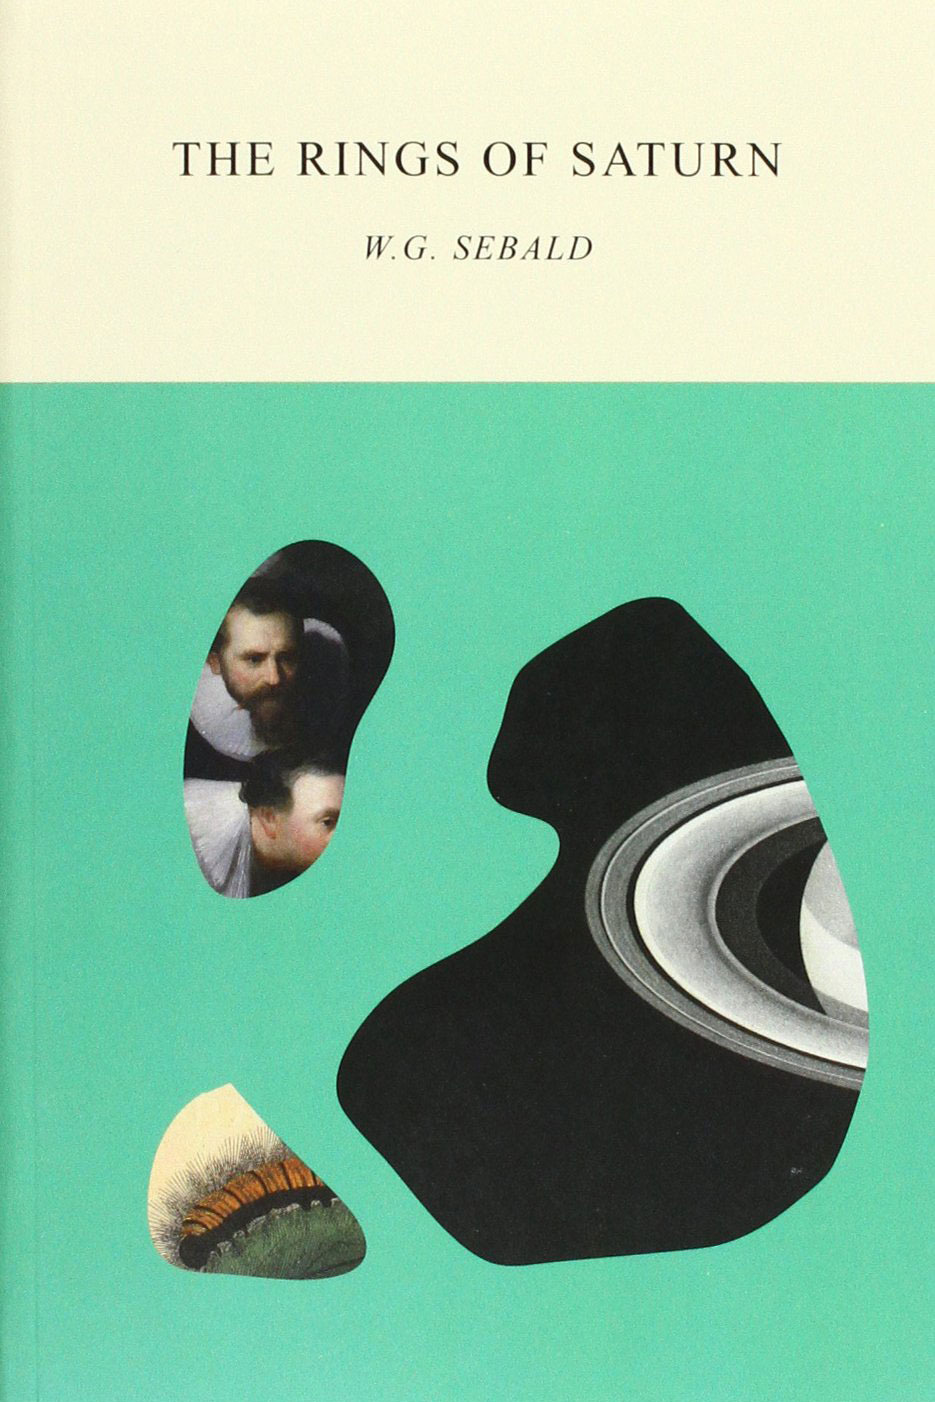 The Rings of Saturnby W.G. Sebald